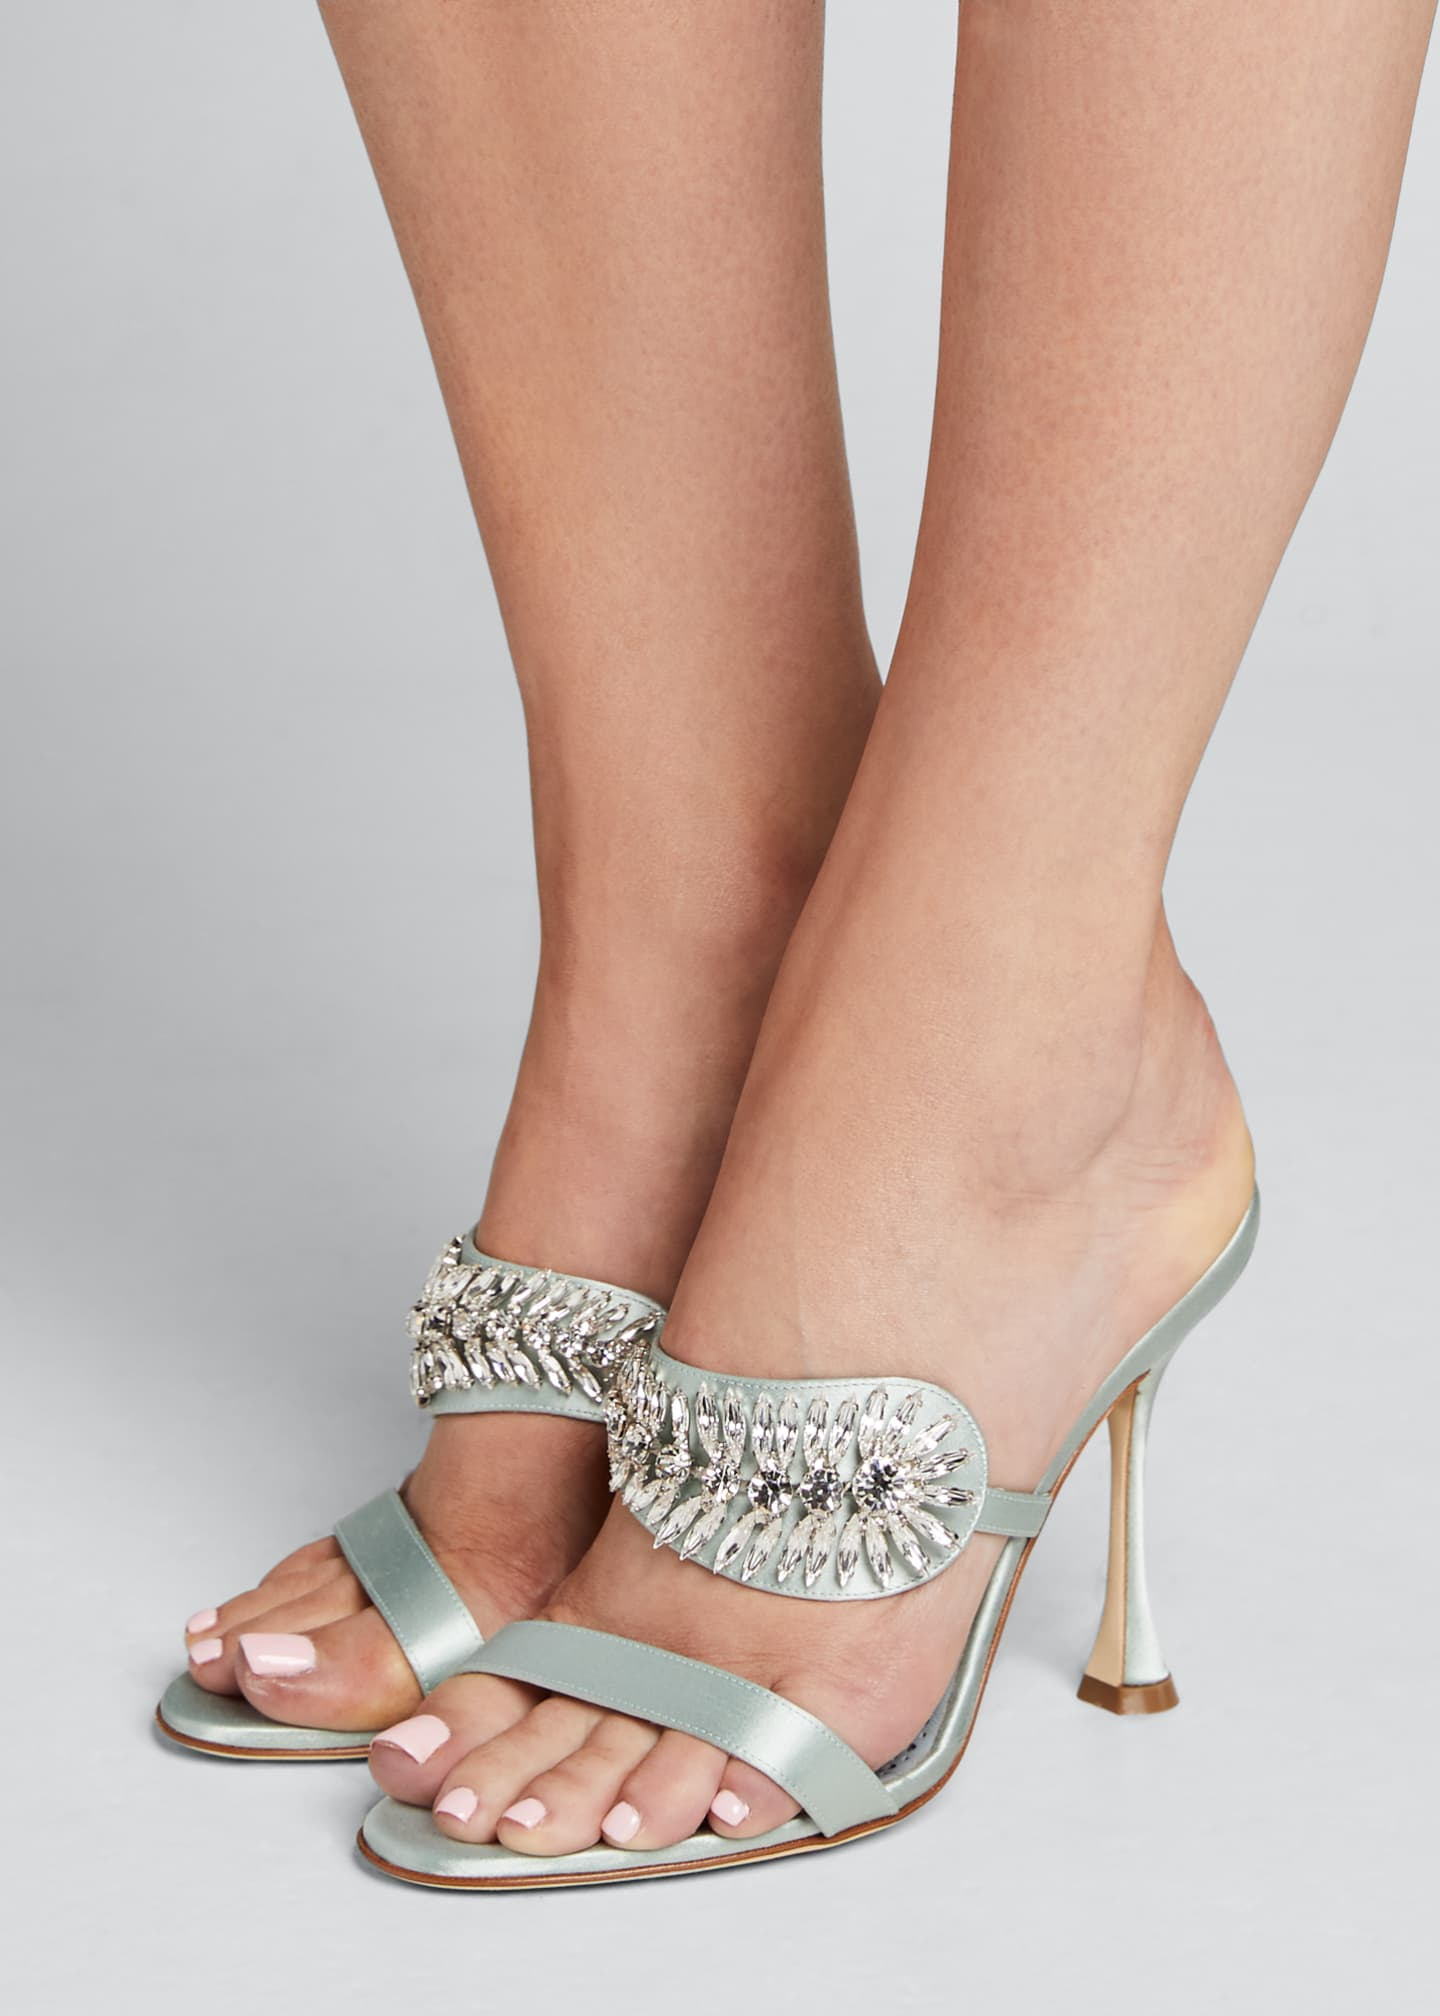 Image 2 of 5: Skysan Satin Crystal Sandals